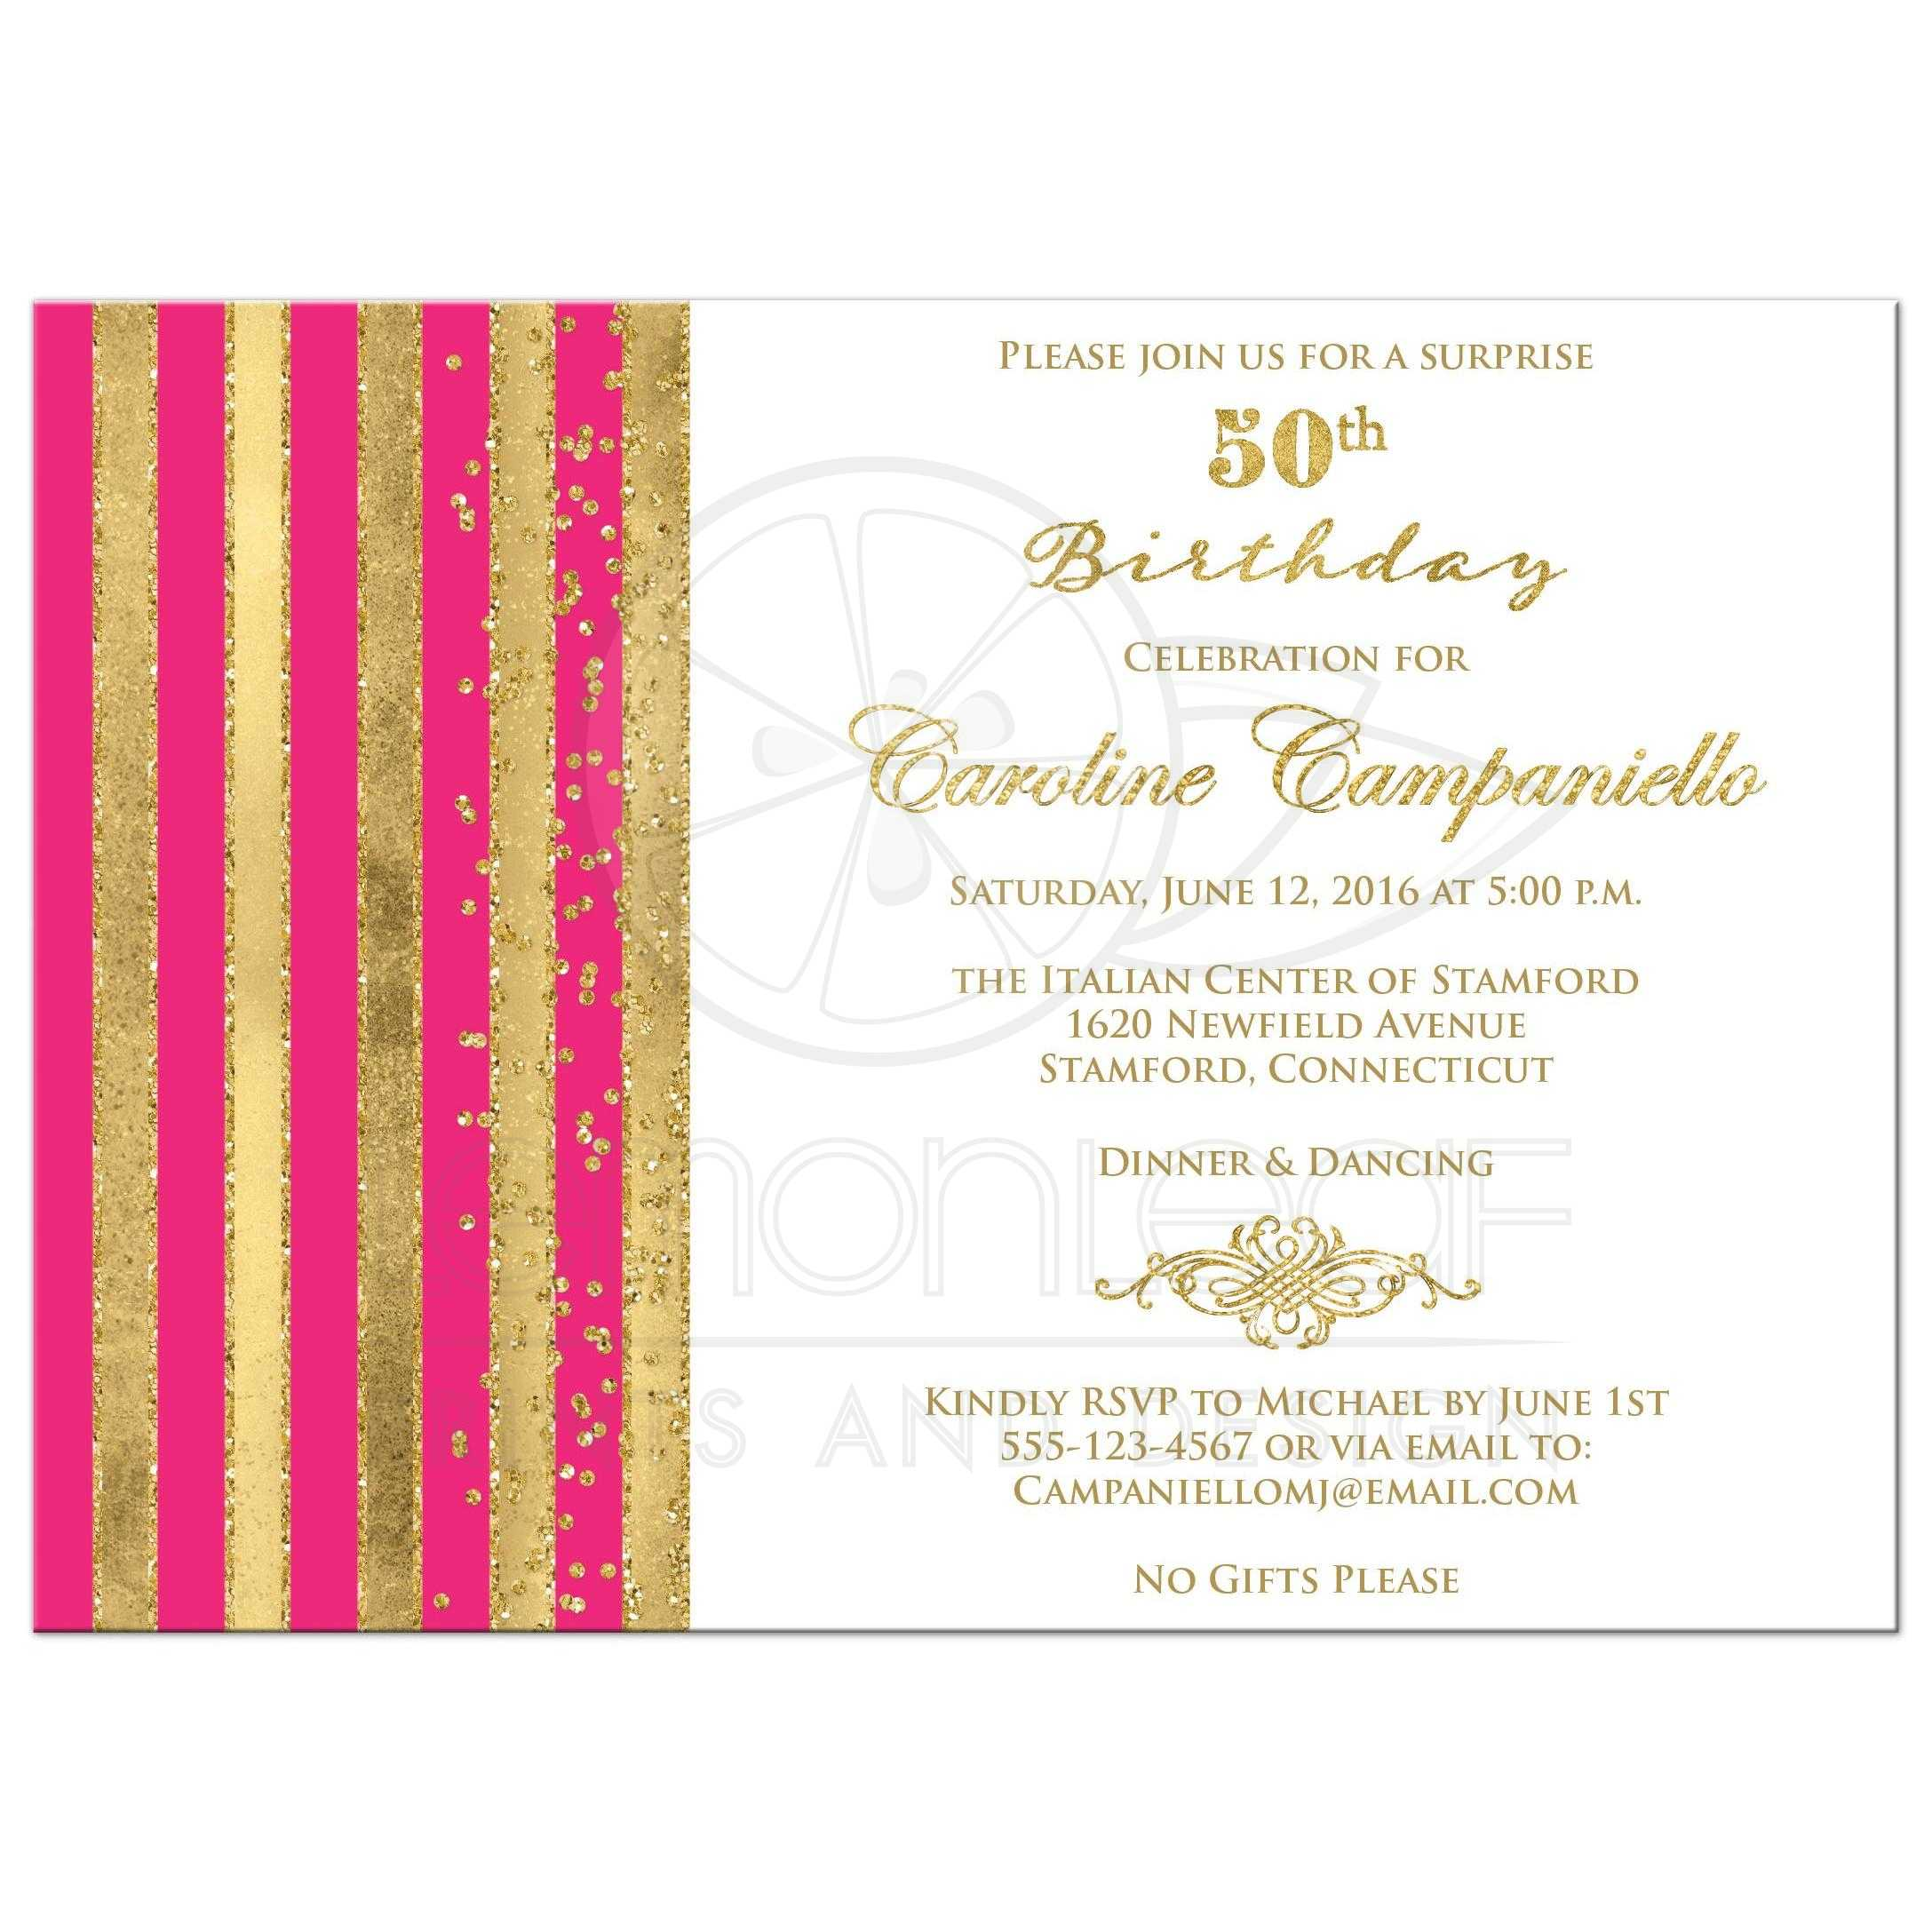 50th birthday invitation hot pink white gold stripes faux great elegant hot fuchsia pink and white 50th birthday party invitation with faux gold foil stripes stopboris